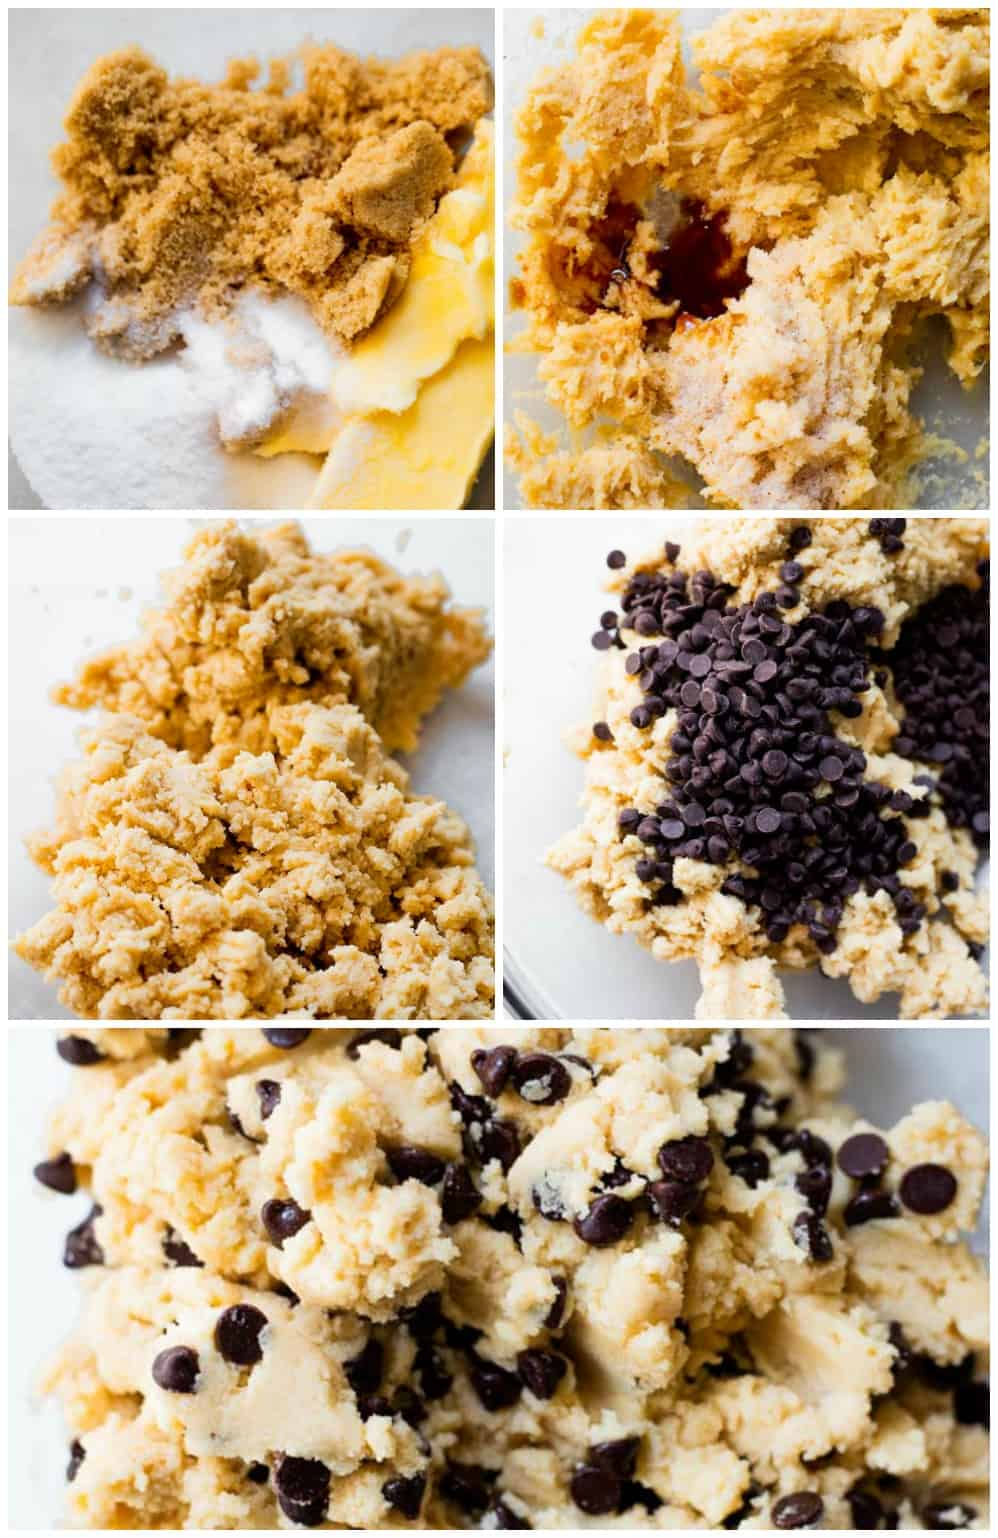 The process of making edible chocolate chip cookie dough.